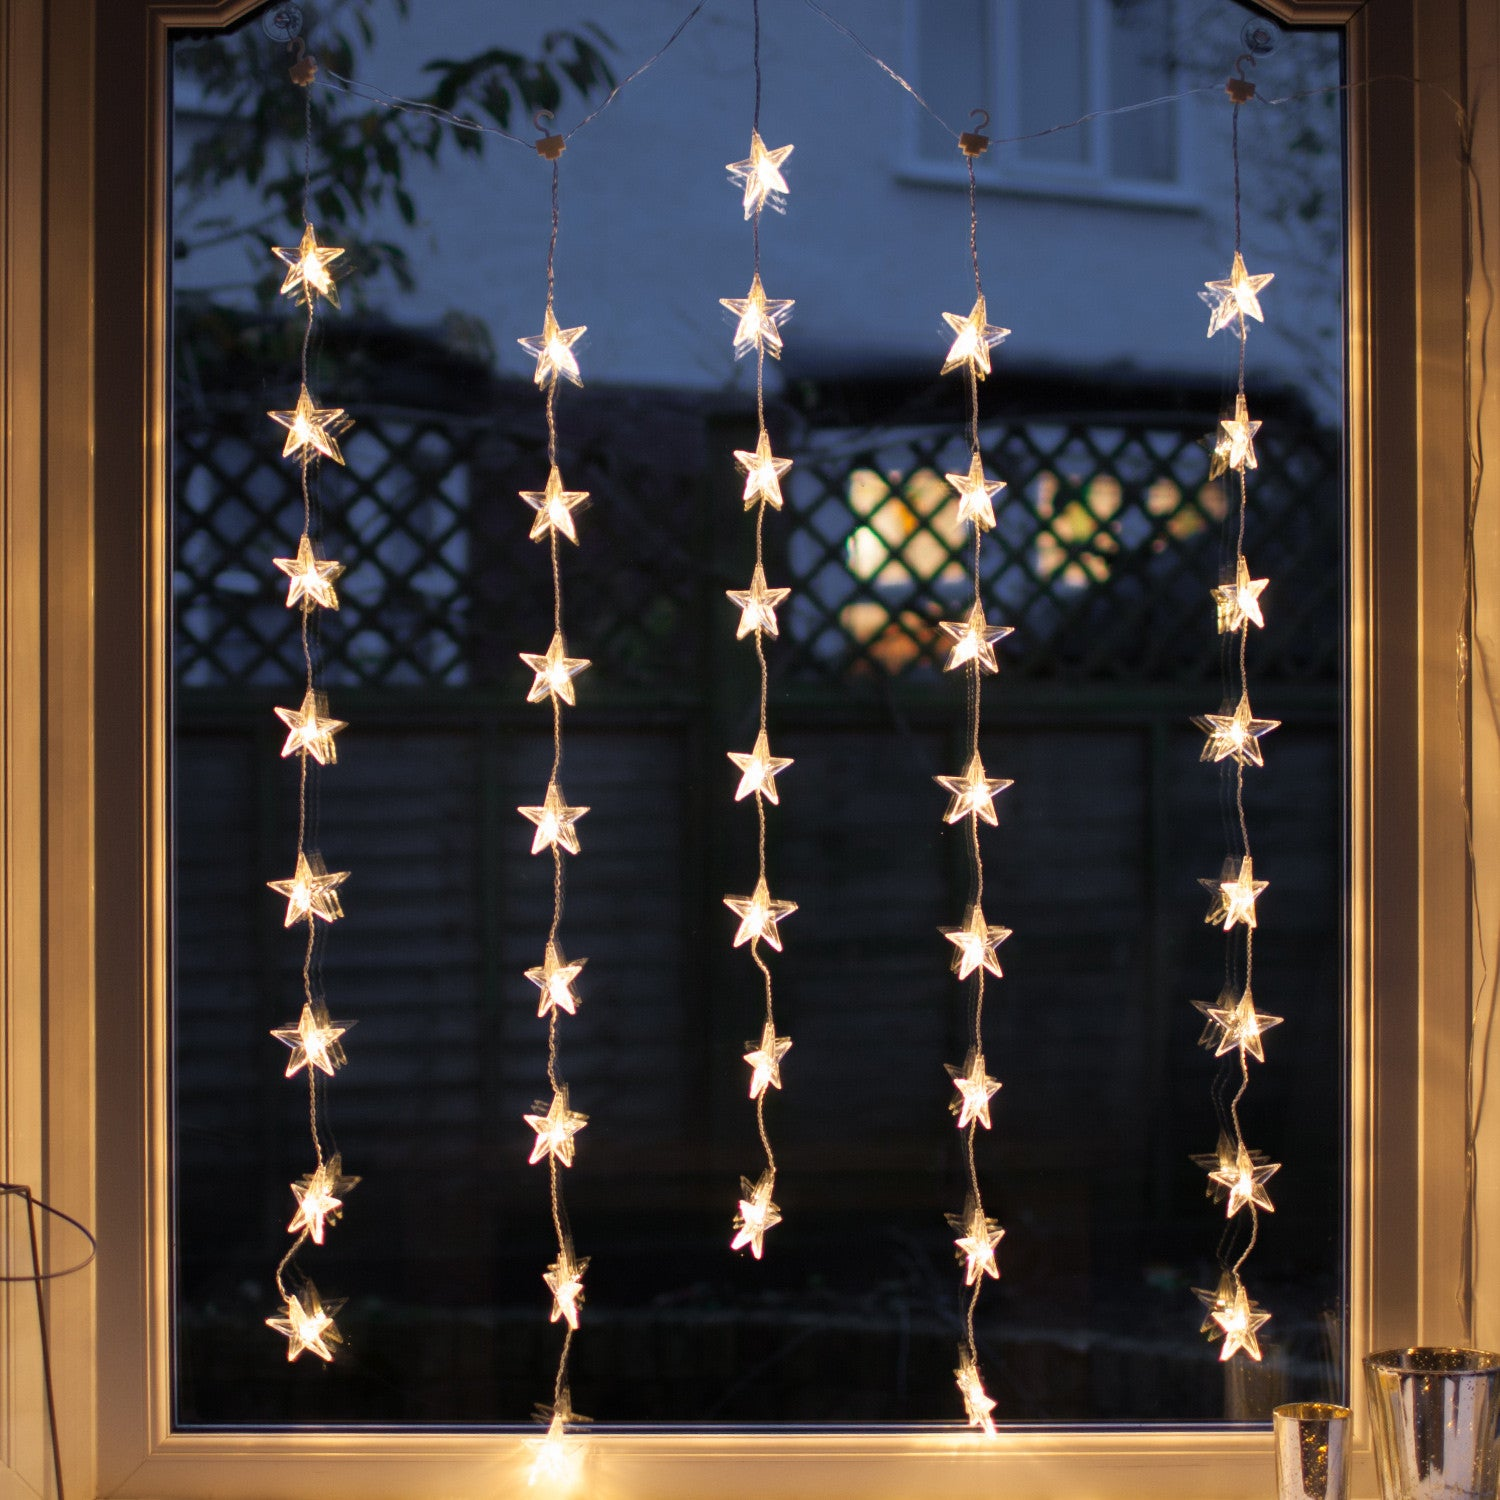 40 Warm White Led Star Curtain Light Lights4fun Co Uk